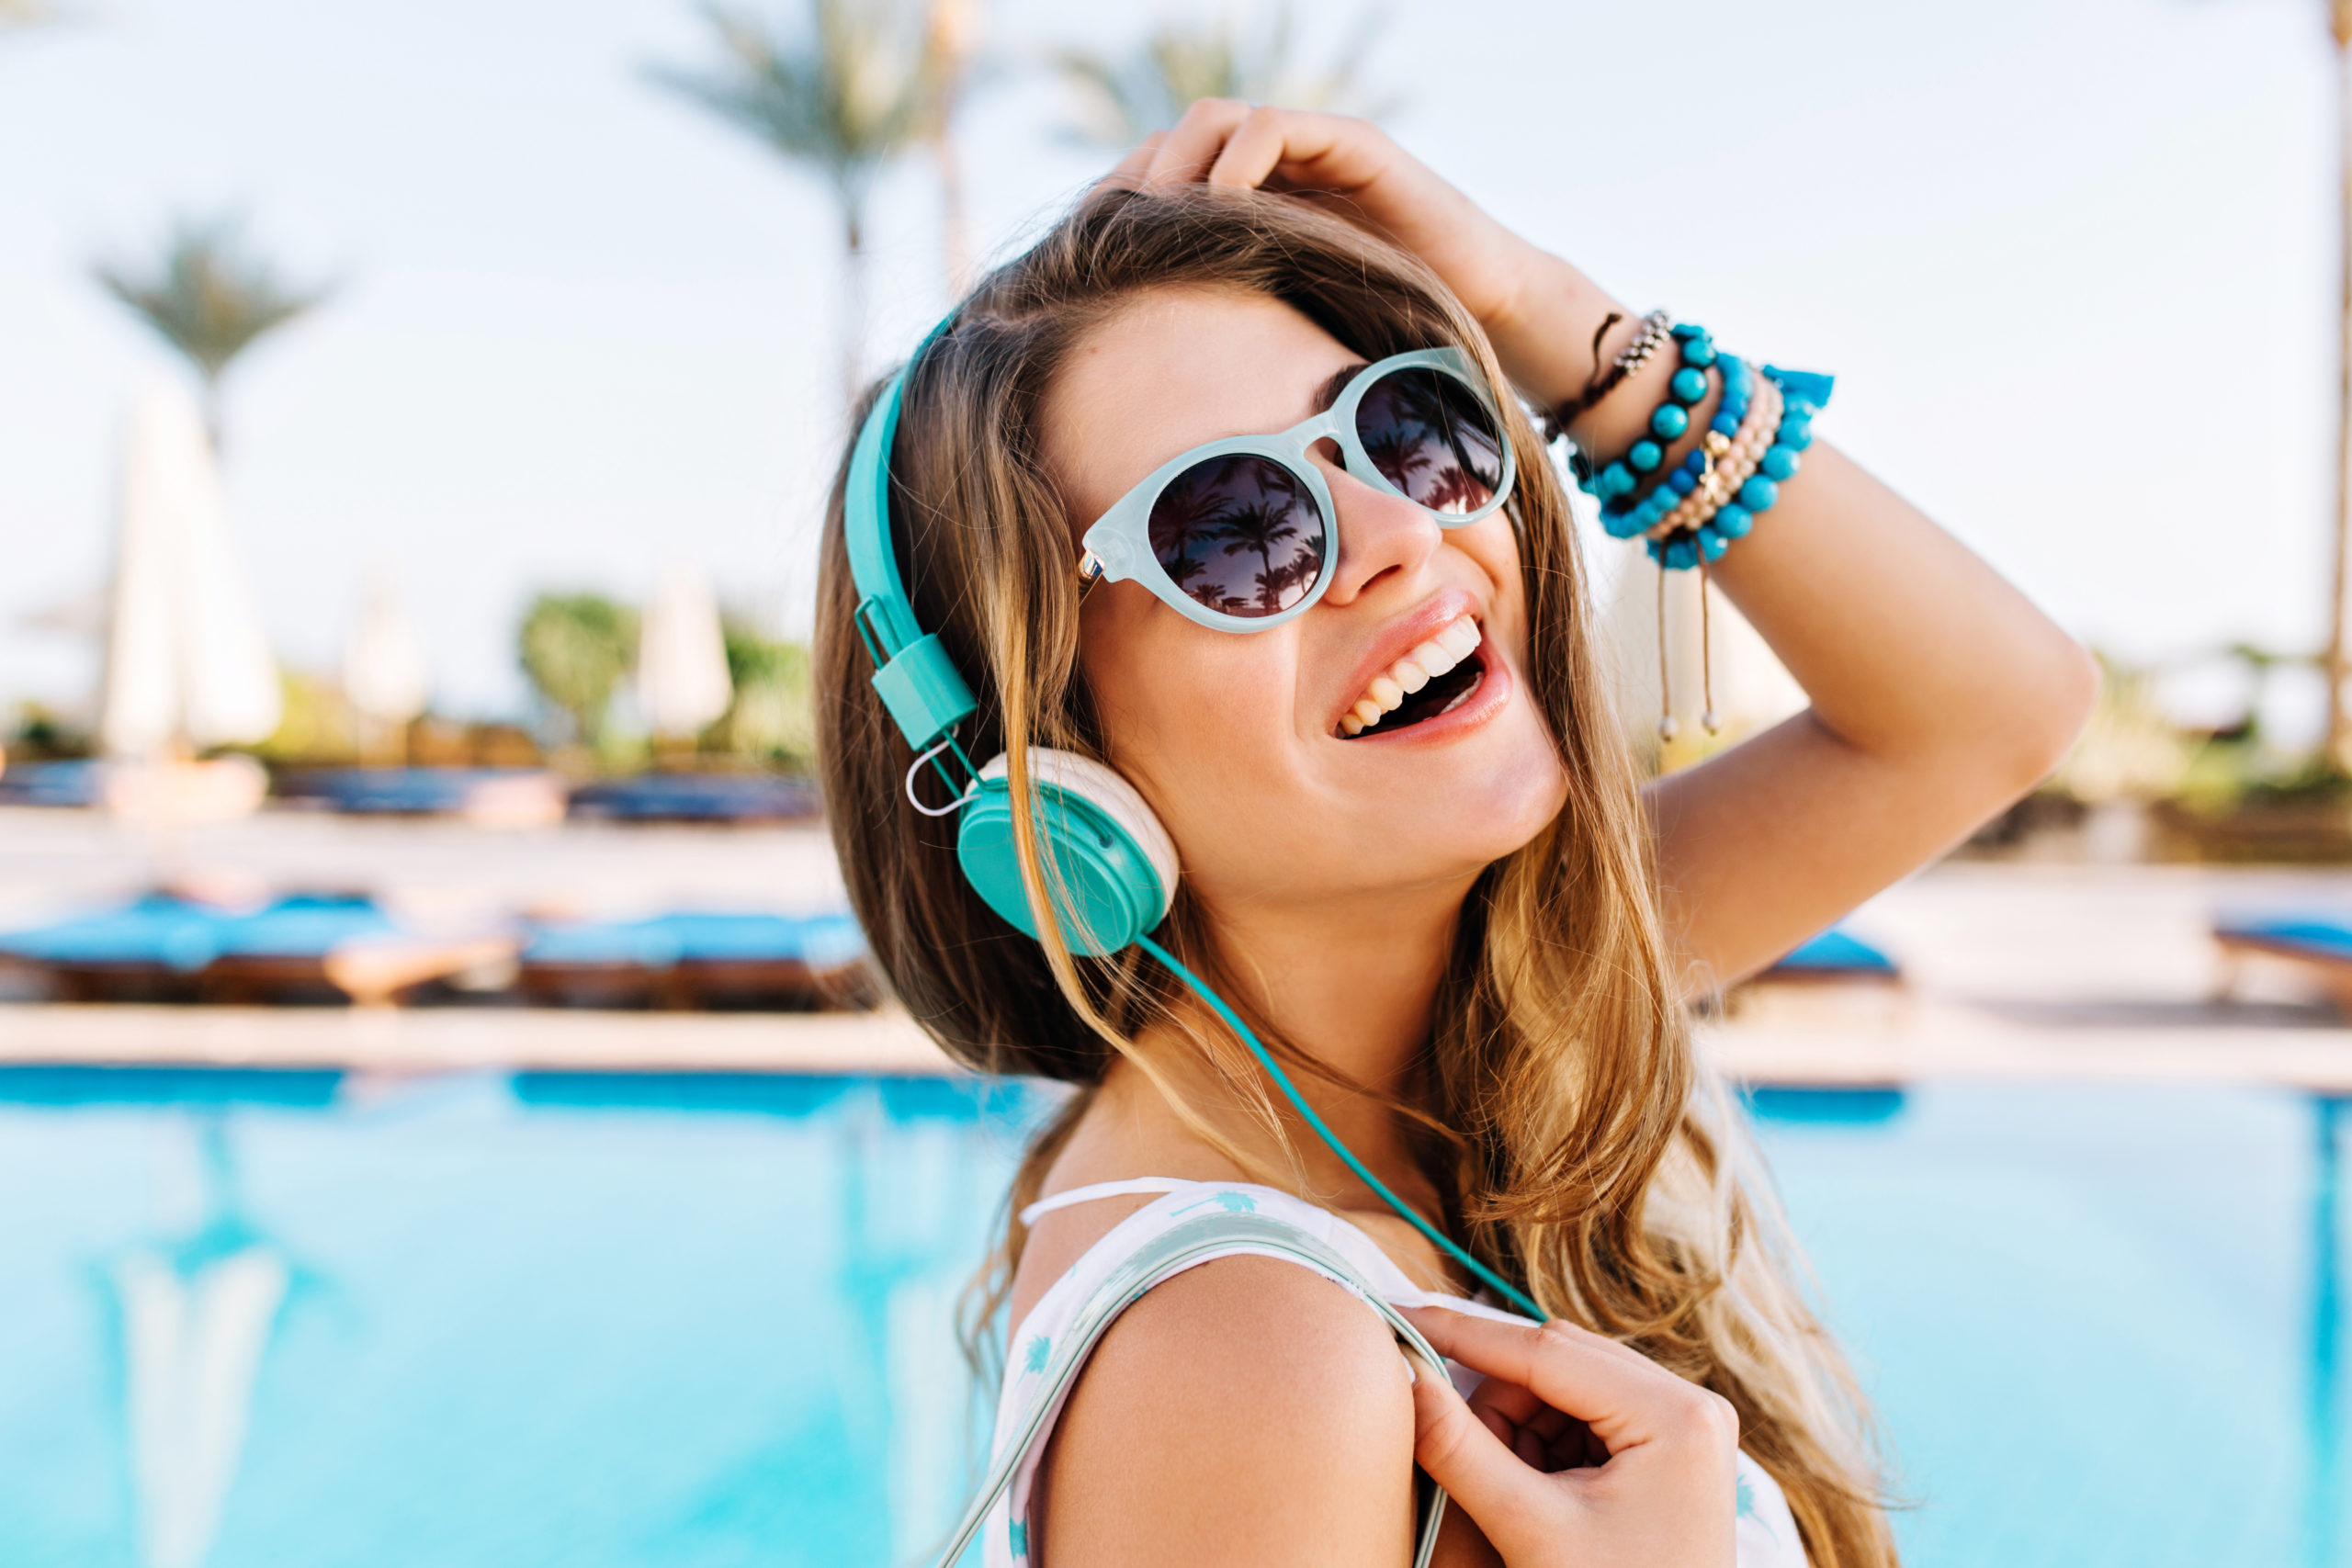 close up portrait joyful laughing young lady trendy bracelets posing with hand up near open air blue swimming pool scaled